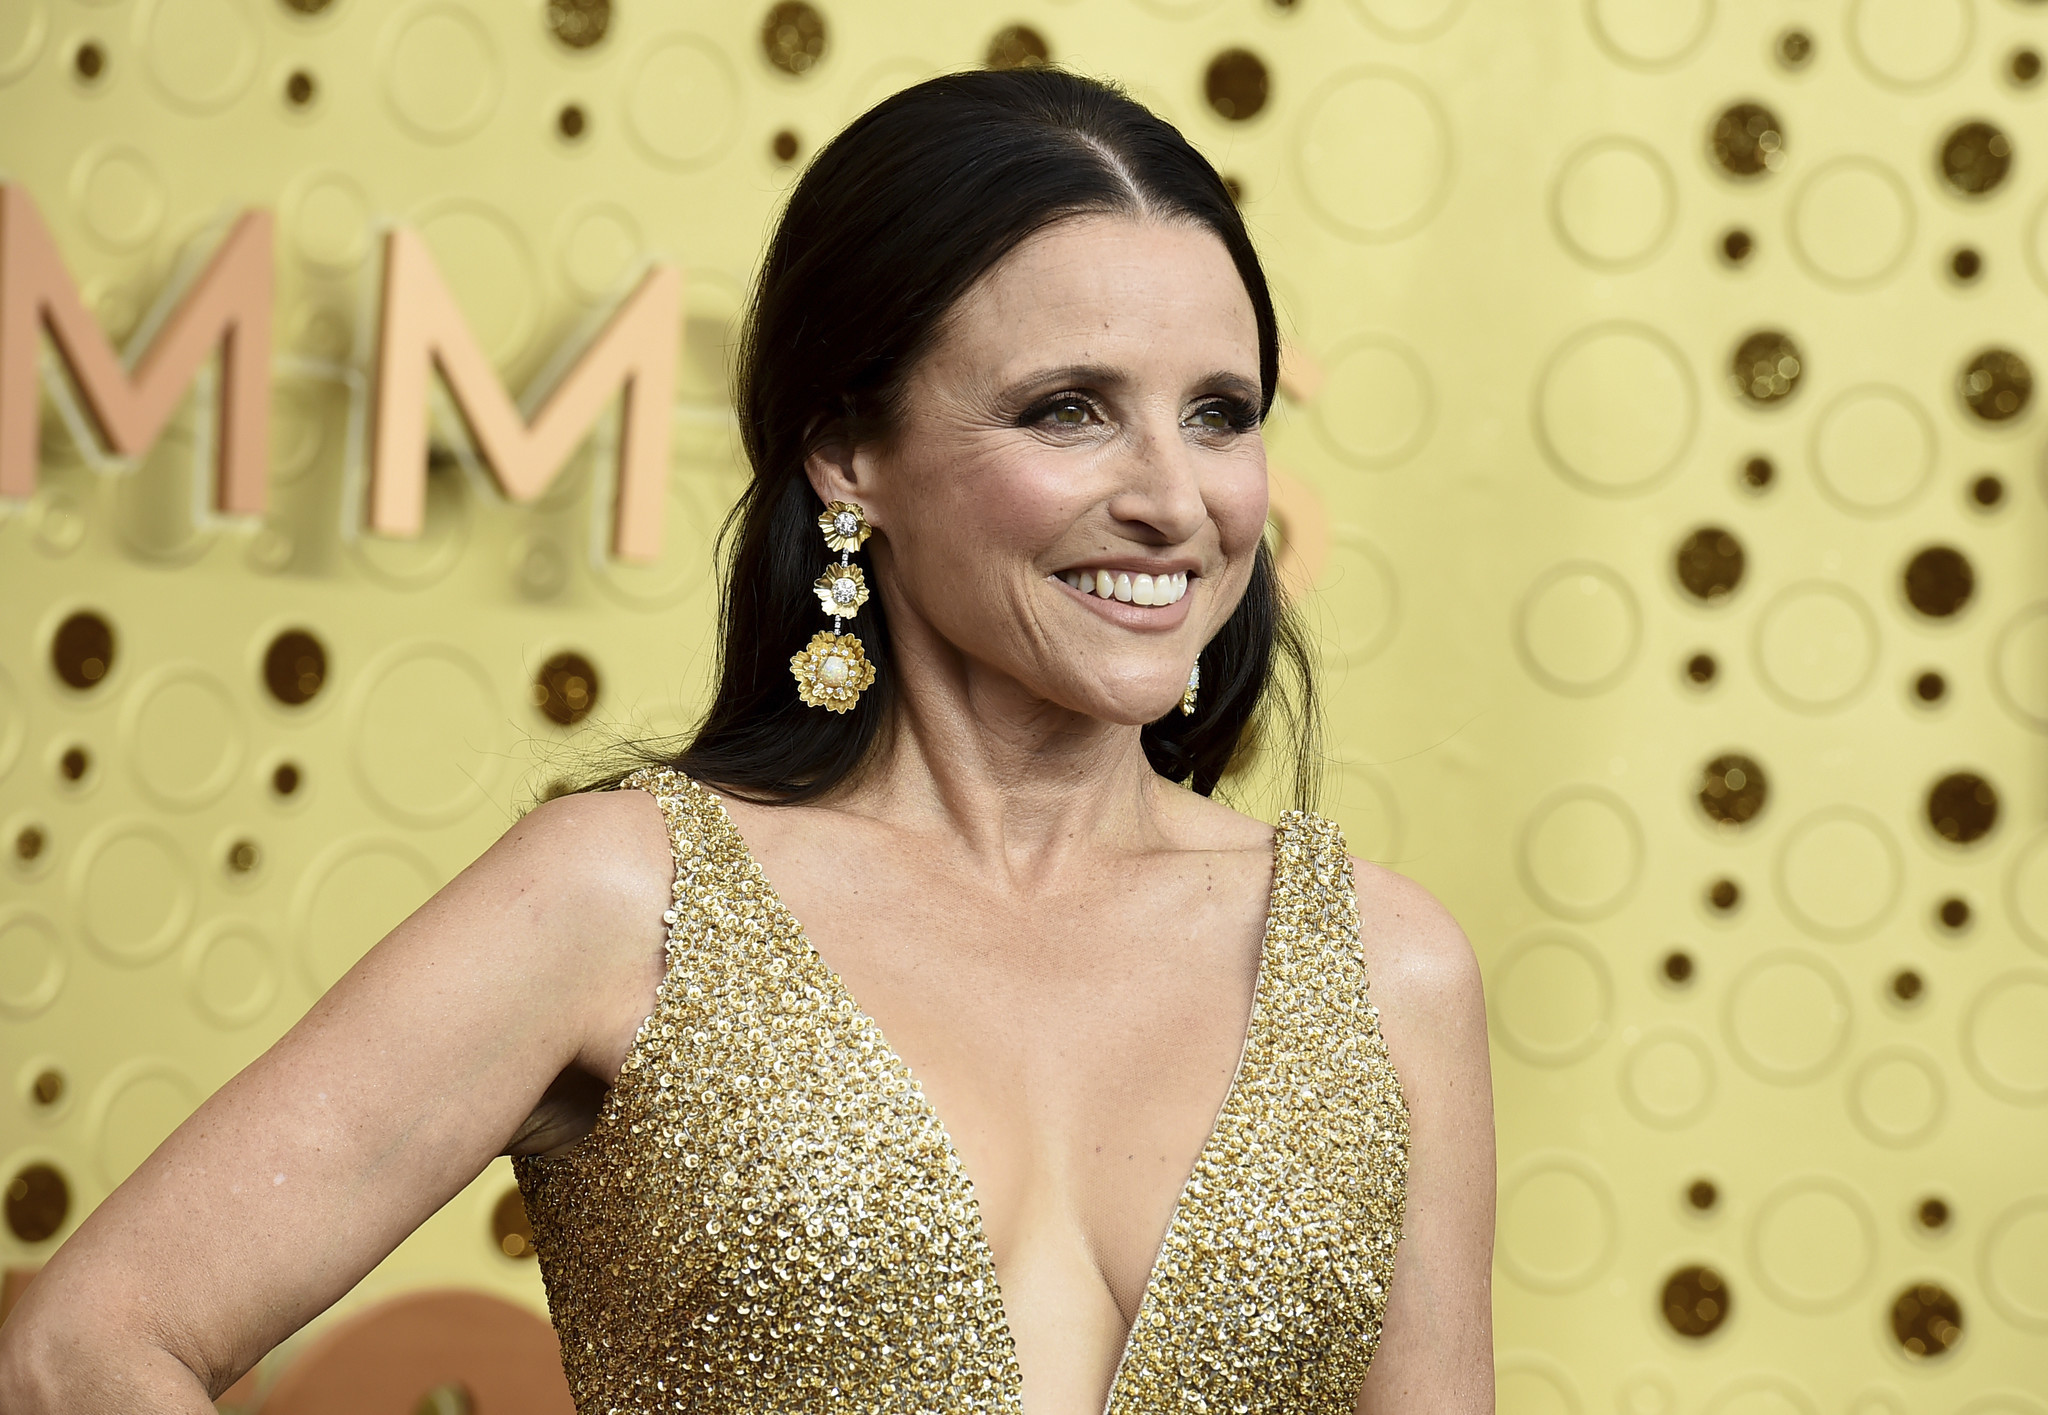 Julia Louis-Dreyfus signs exclusive deal with Apple: 'I am paid in AirPods'